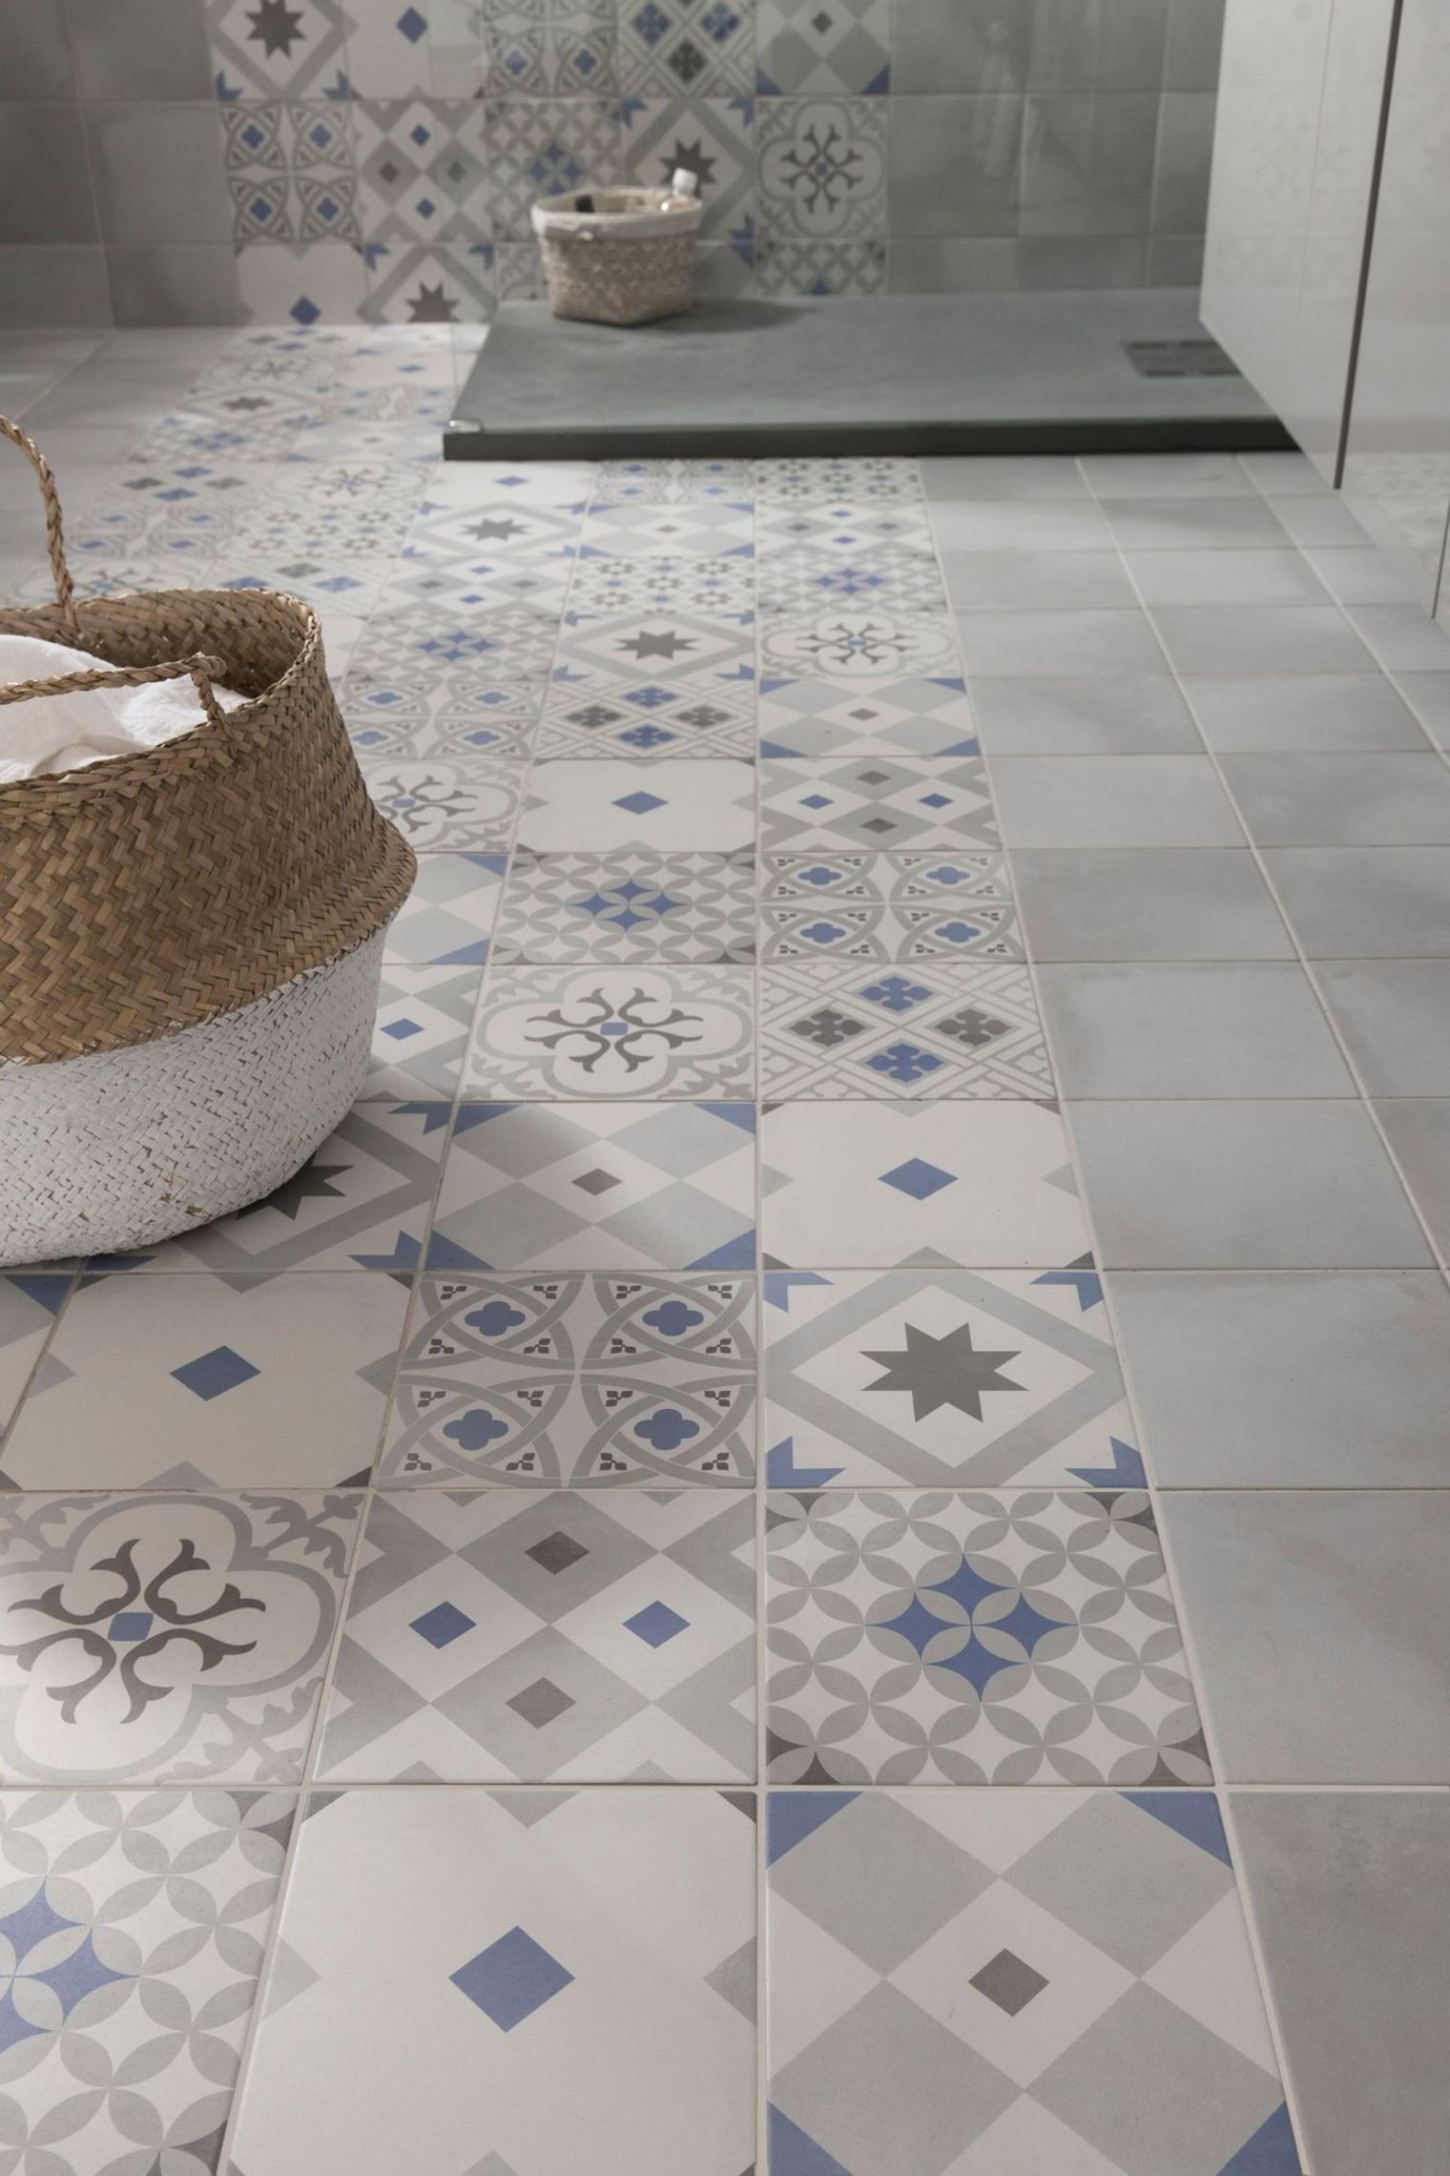 Source Leroy Merlin Via Cote Maison Tiles Bathroom Flooring Tile Bathroom